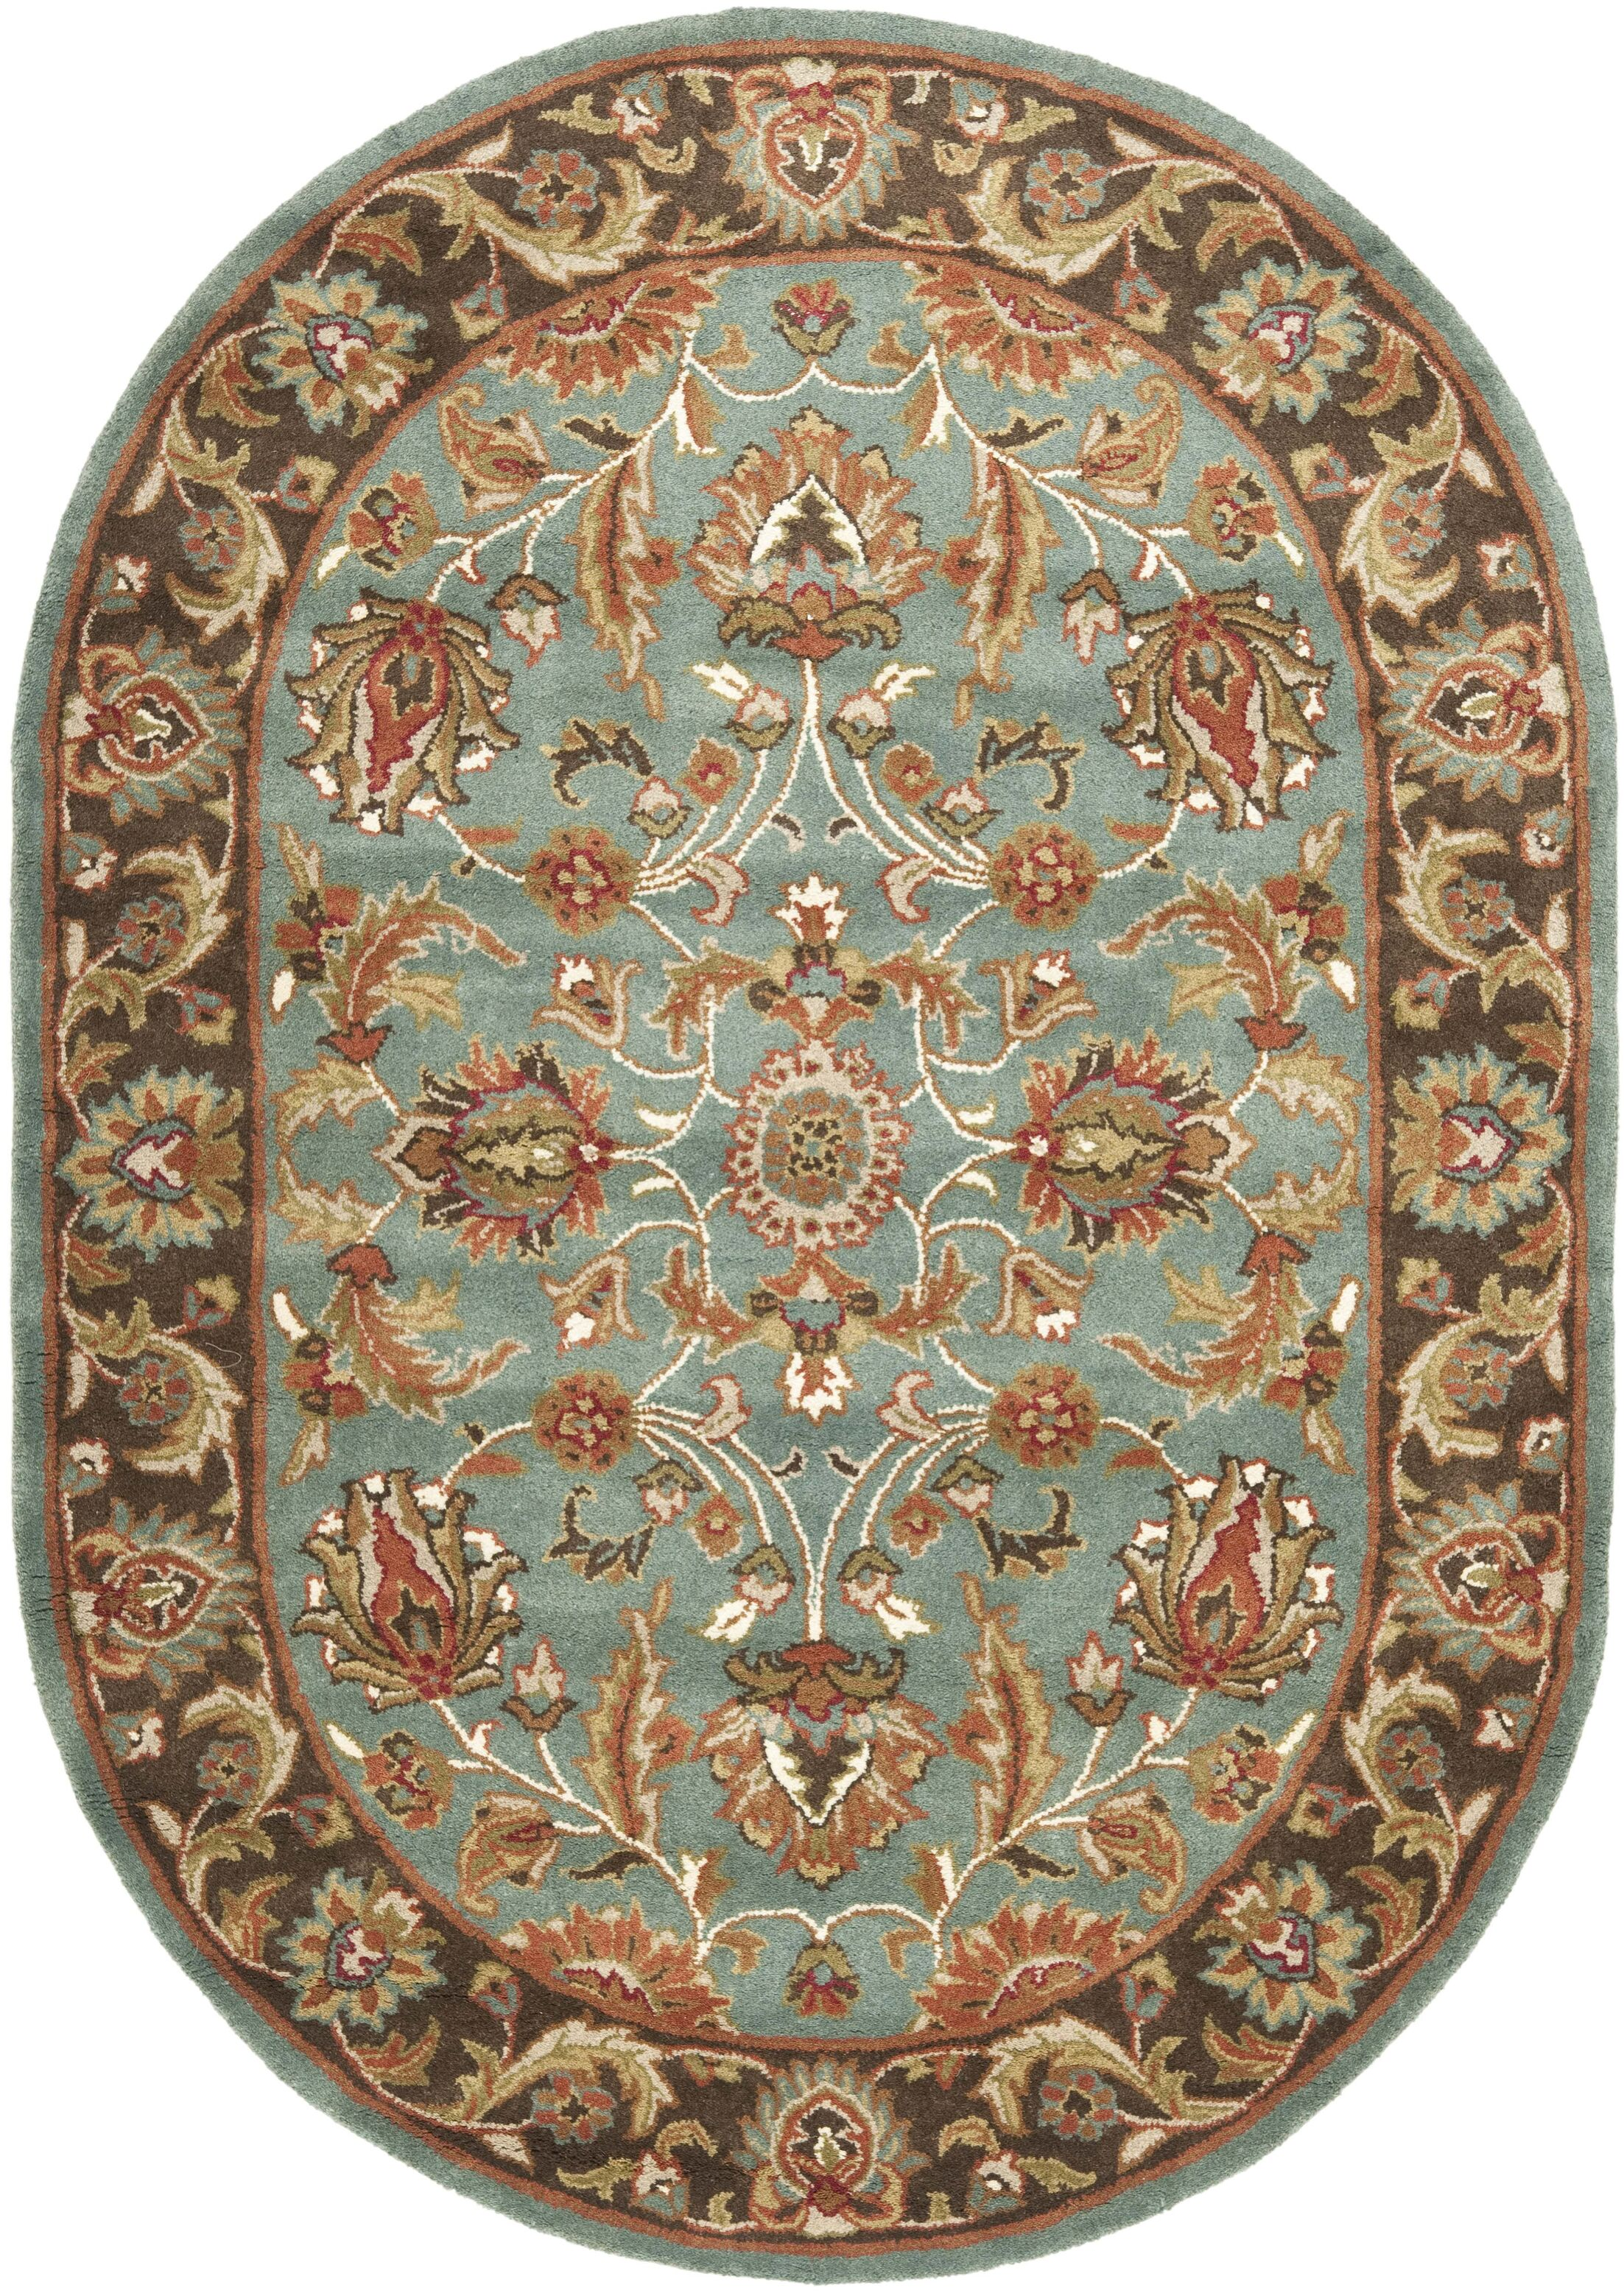 Cranmore Hand-Tufted Blue/Brown Area Rug Rug Size: Oval 7'6